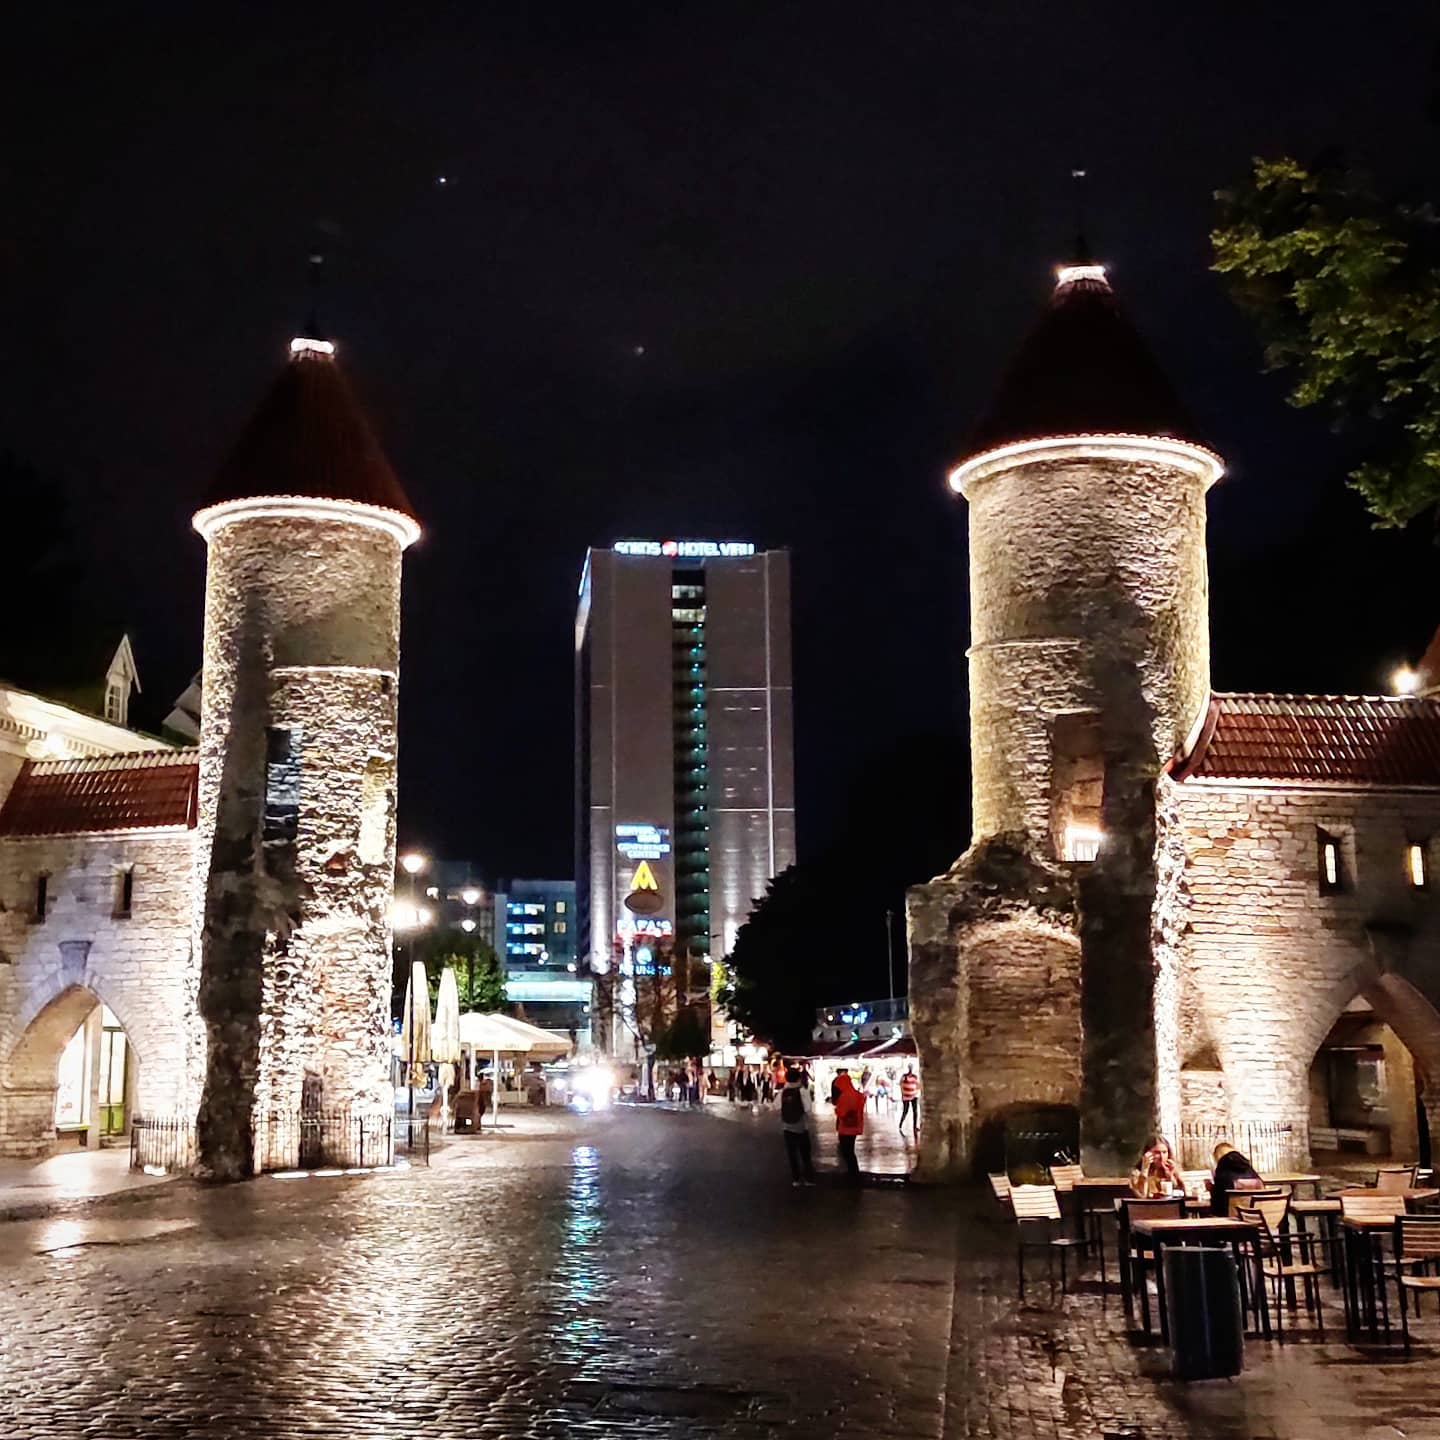 24 August 20 - walking around.. Tallinn by night..